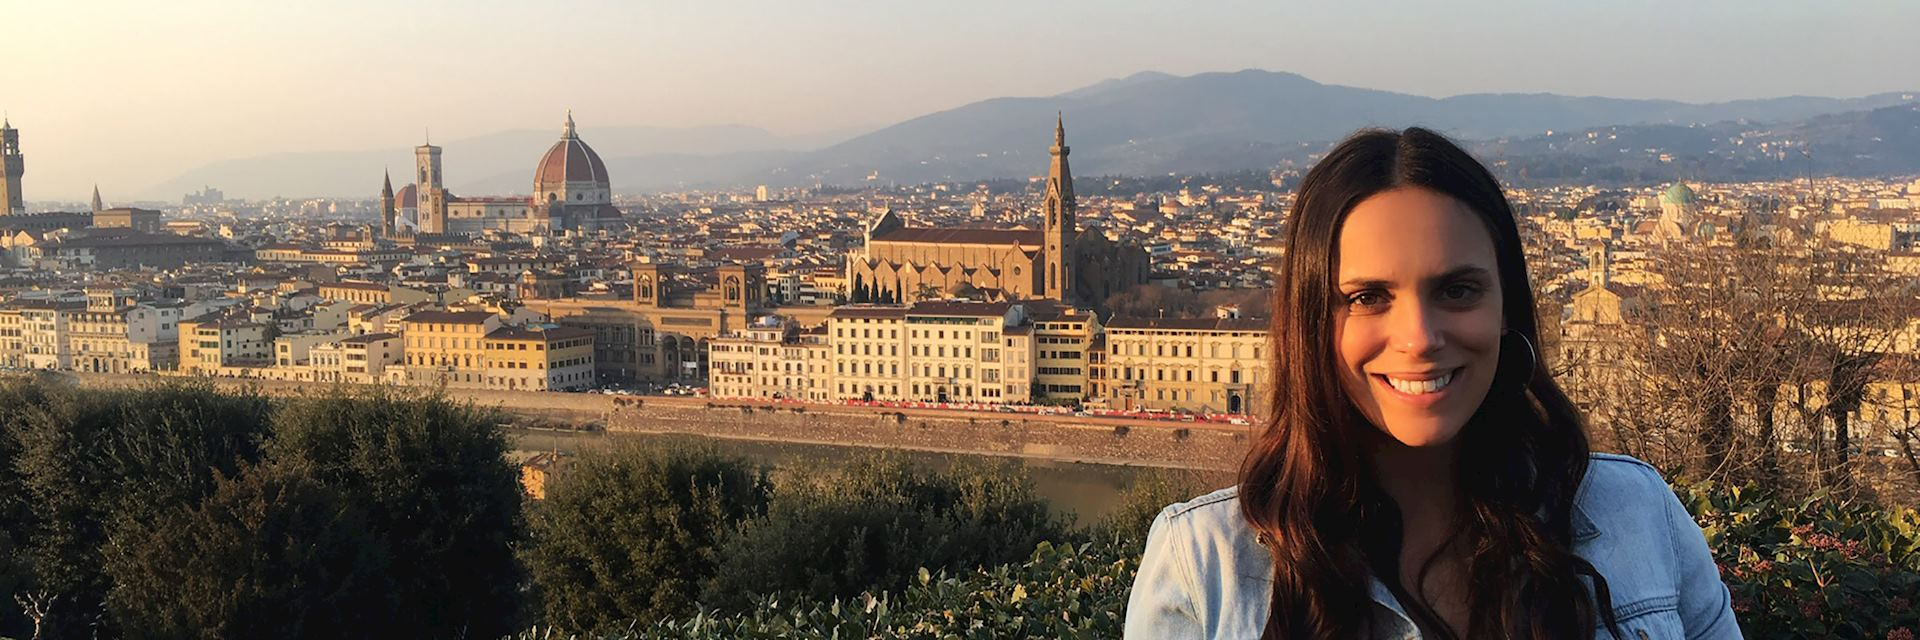 Samantha at Piazza Michelangelo, Florence